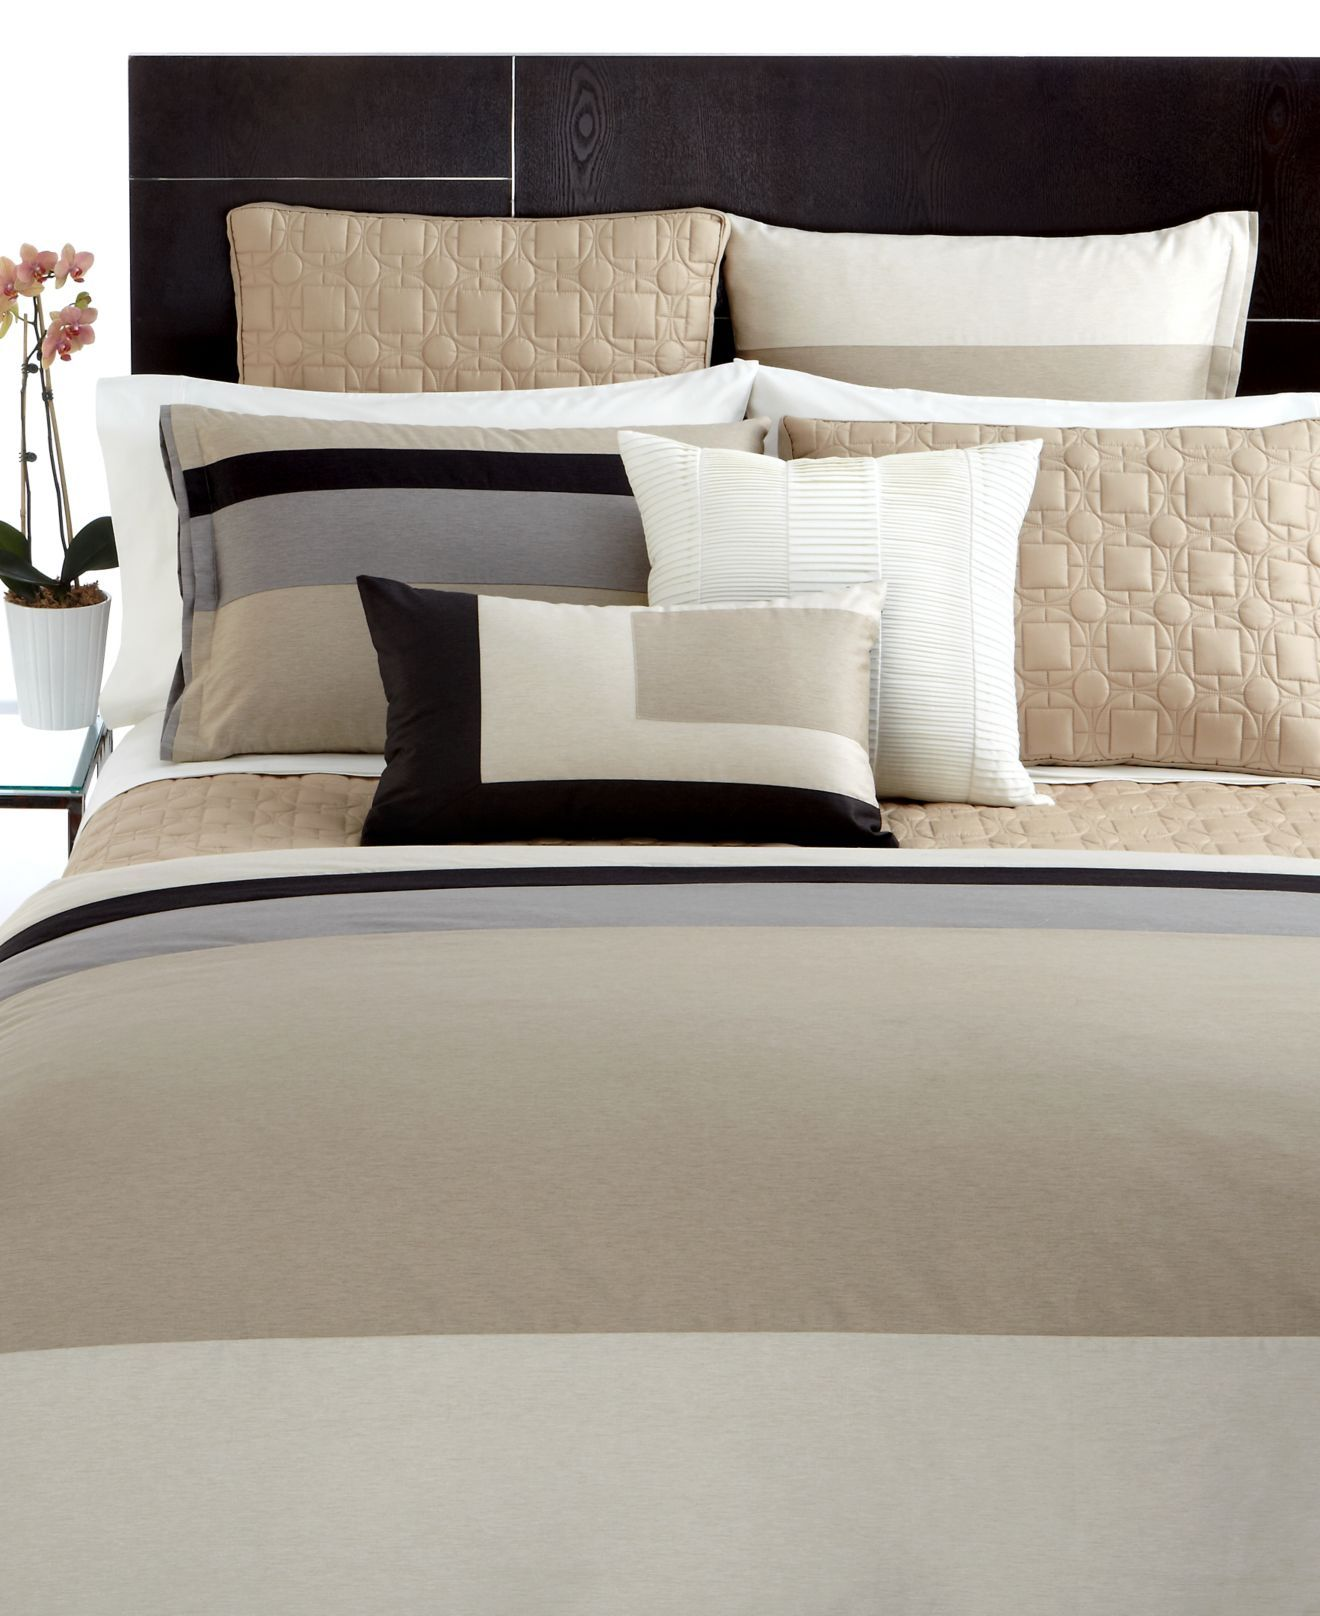 Hotel Collection Bedding Panel Stripe Collection